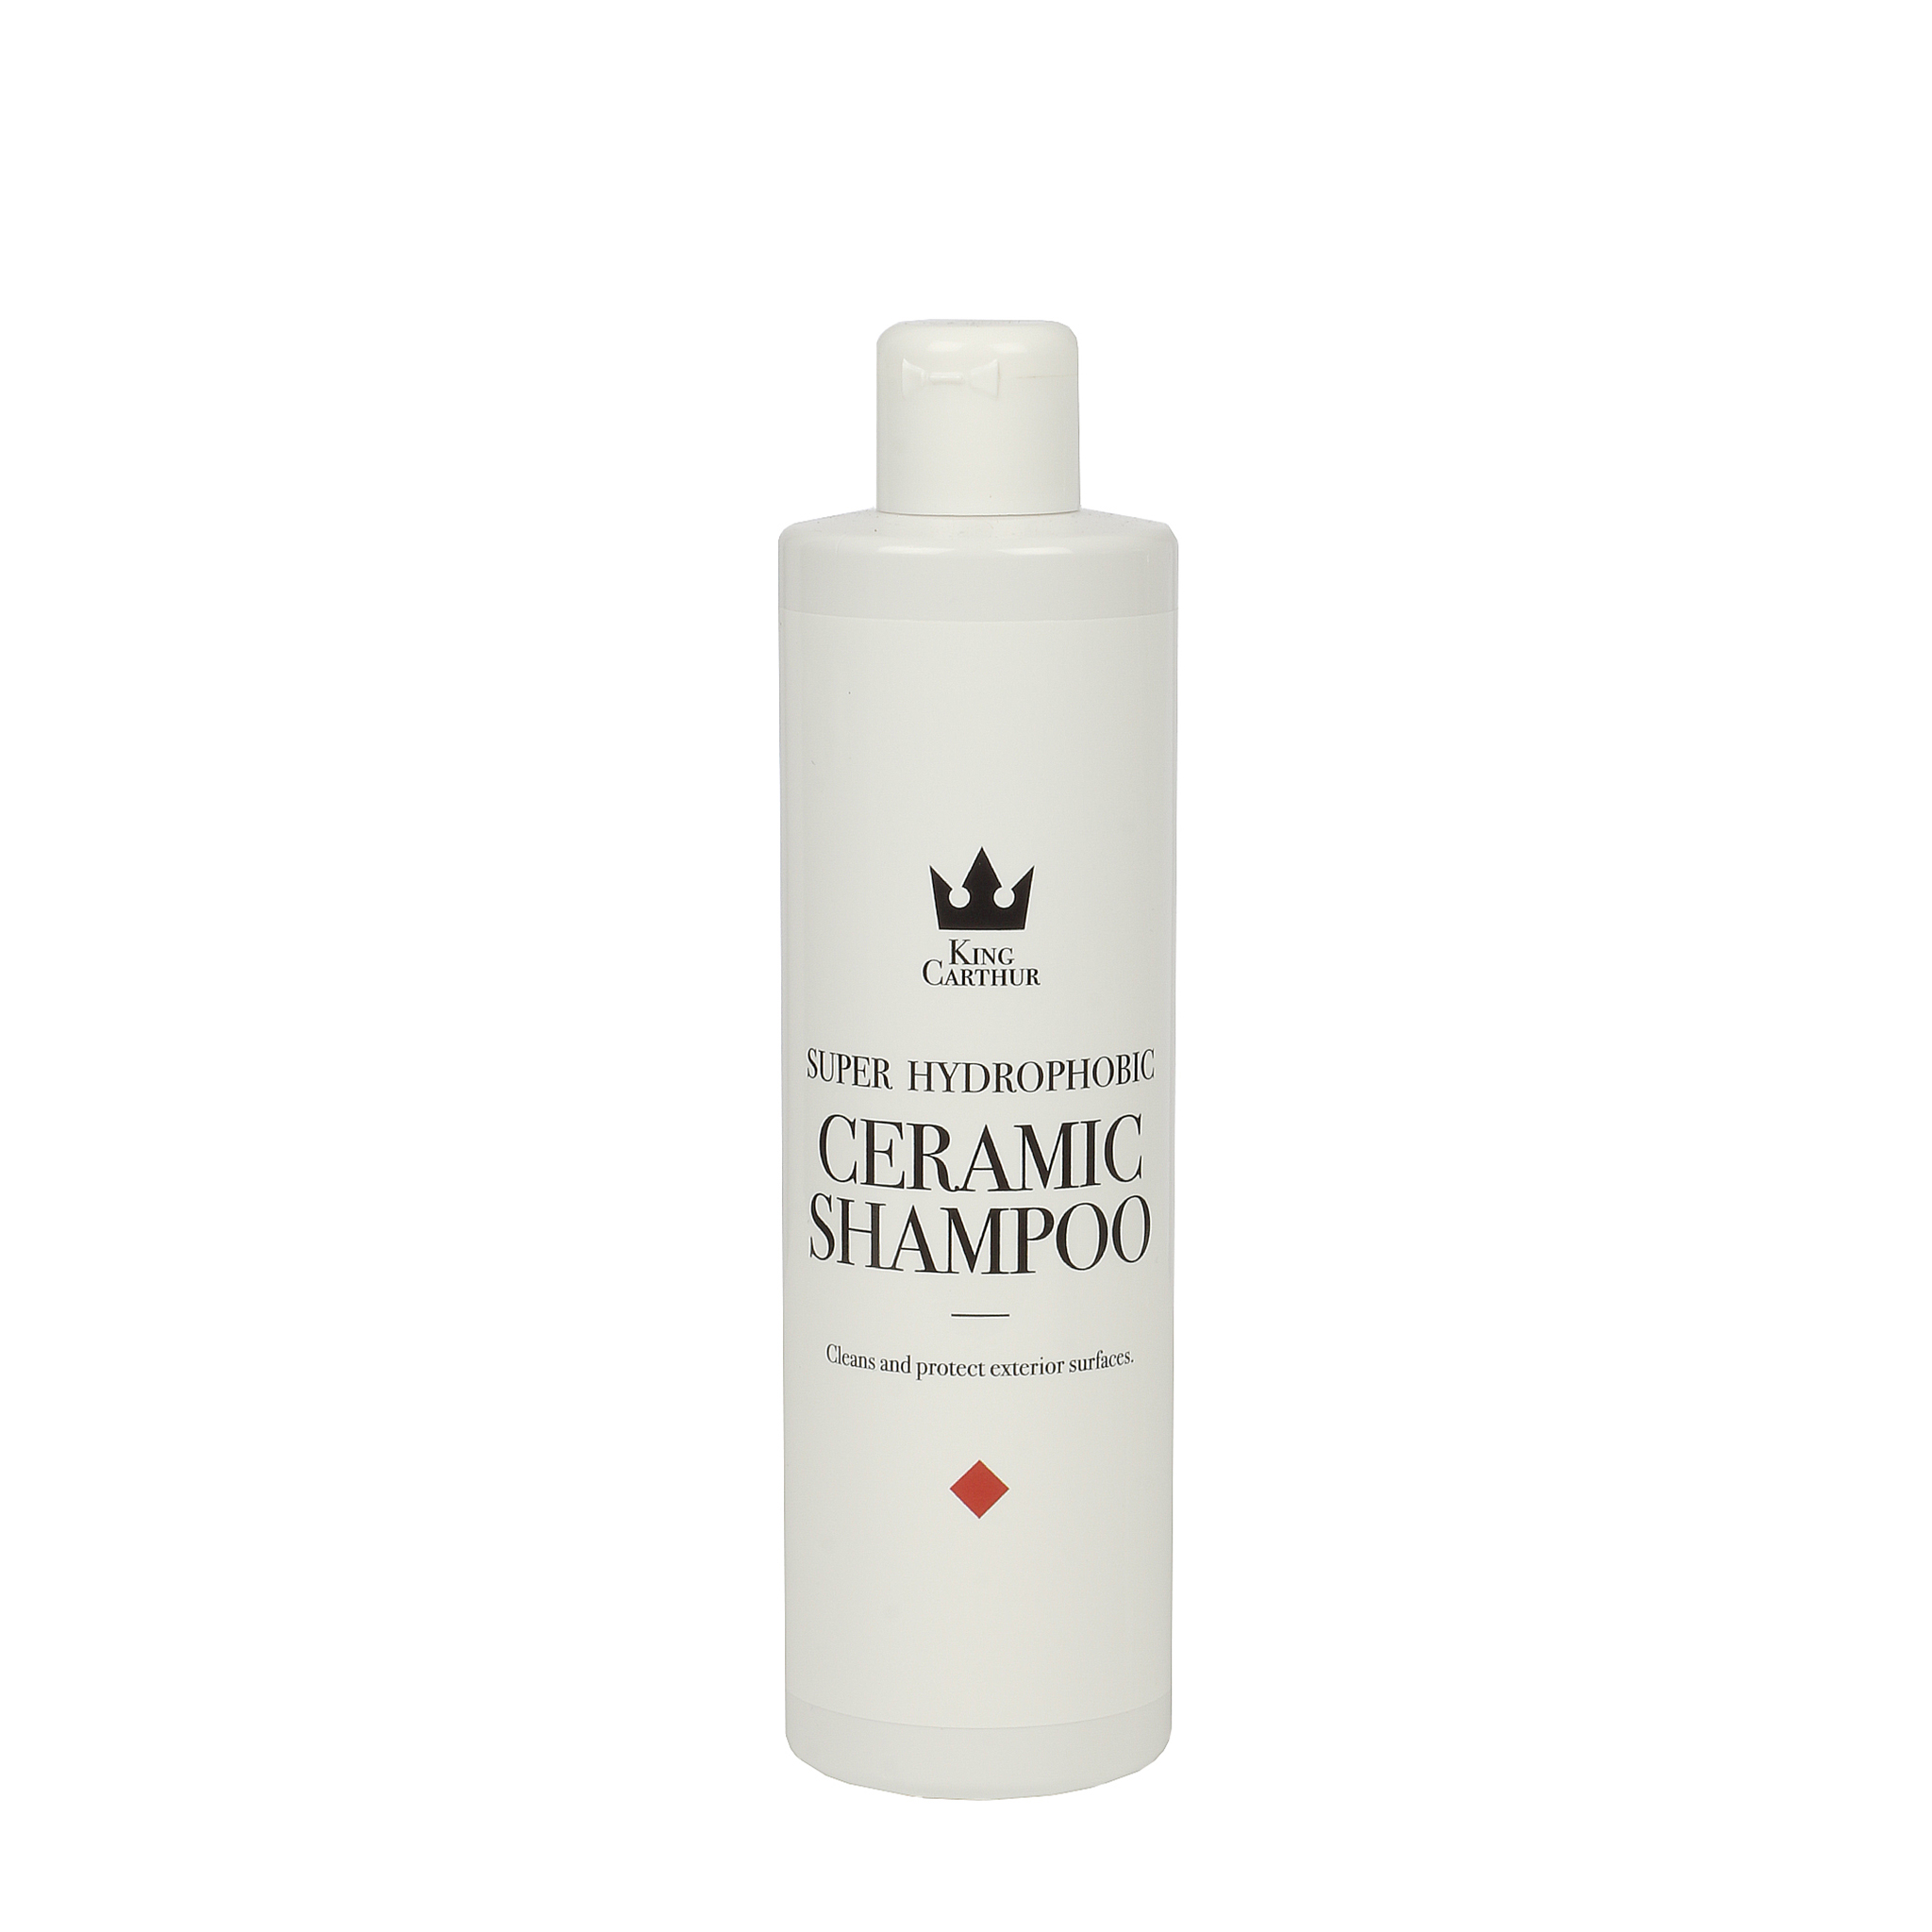 Bilschampo King Carthur Ceramic Shampoo, 300 ml